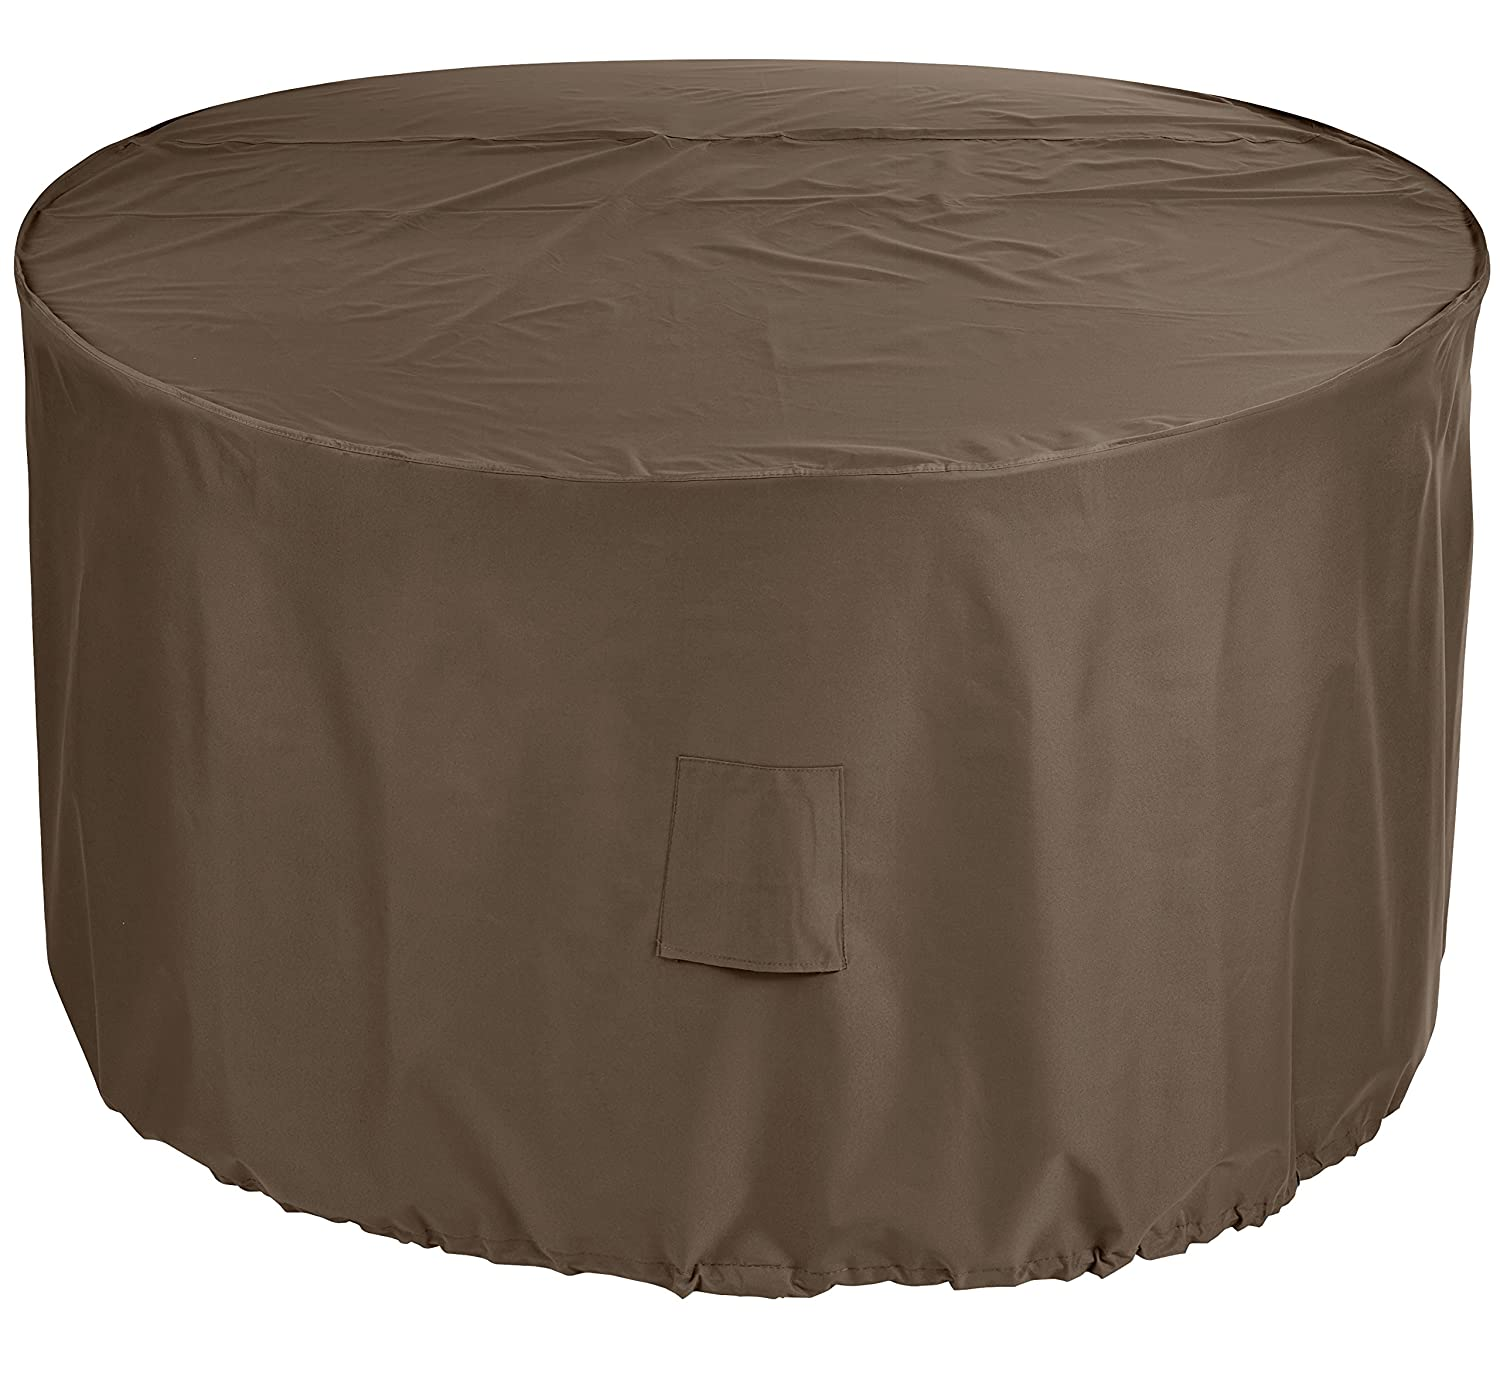 gardman 4 6 seater round table cover amazoncouk garden outdoors